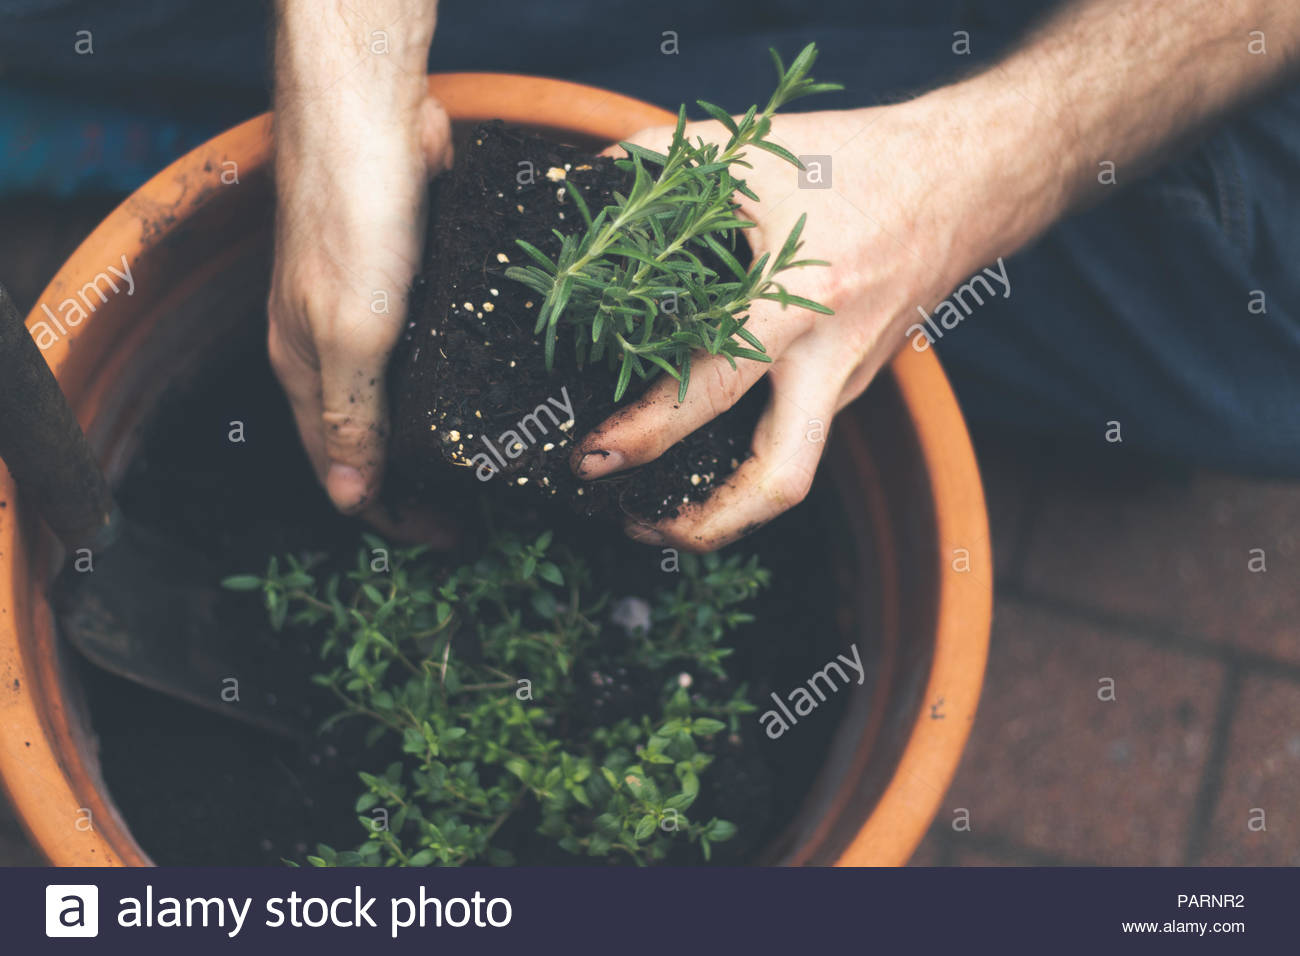 High angle view of human hands holding a potted plant - Stock Image